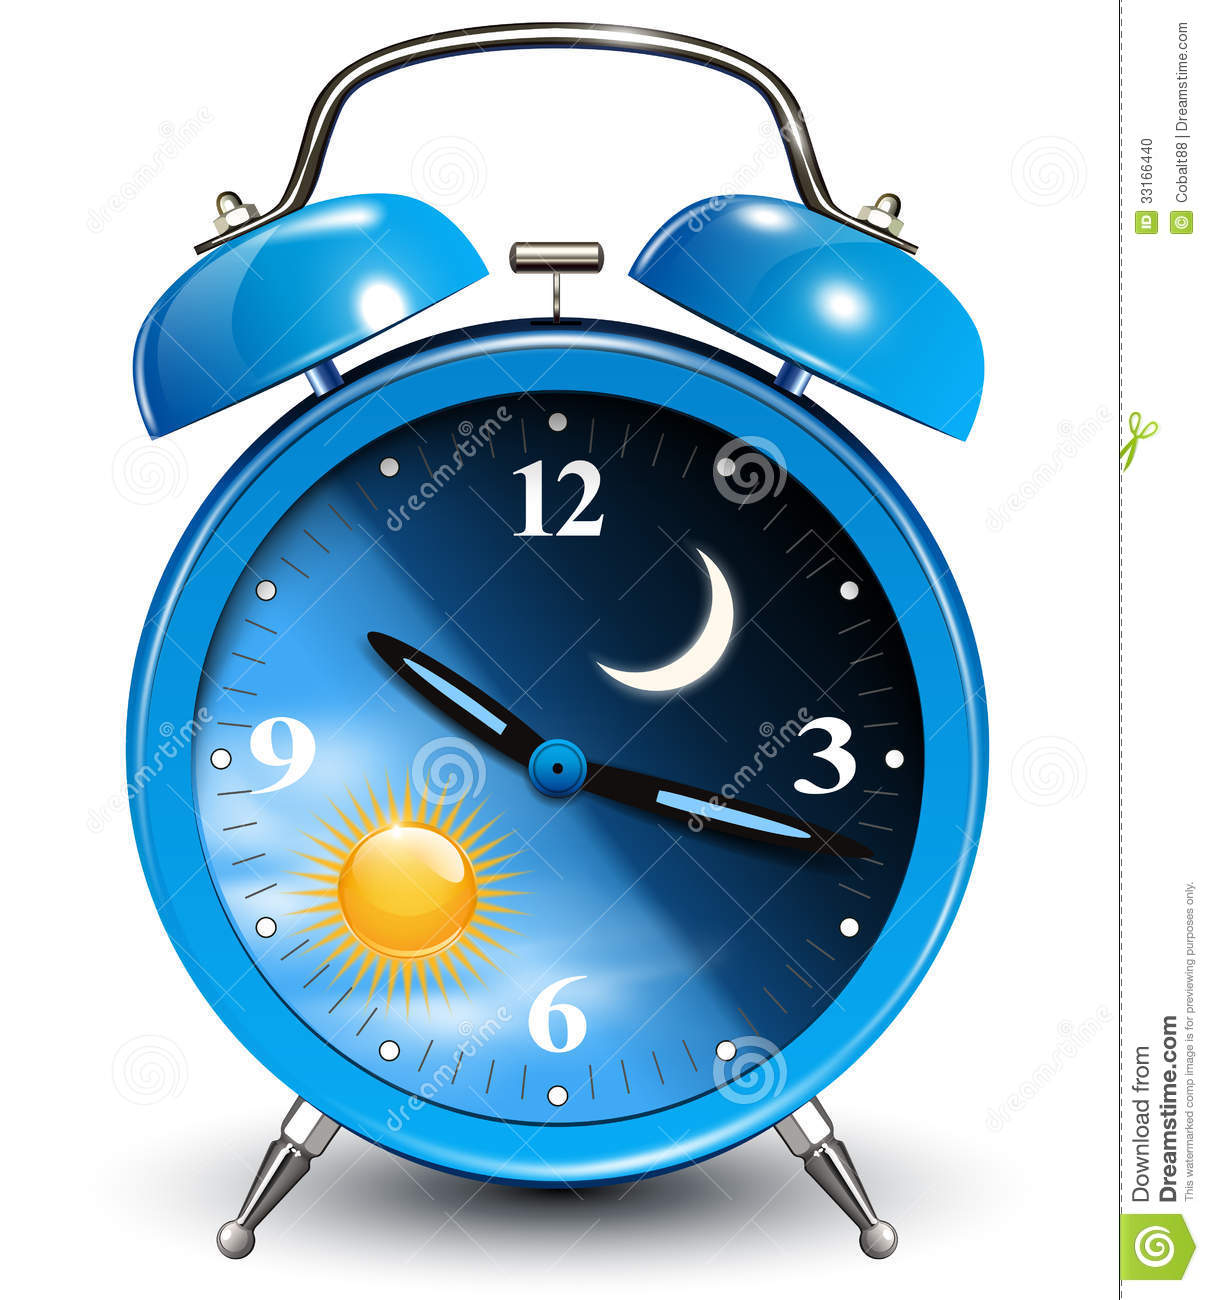 Alarm clock, day and night cycle, vector illustration.